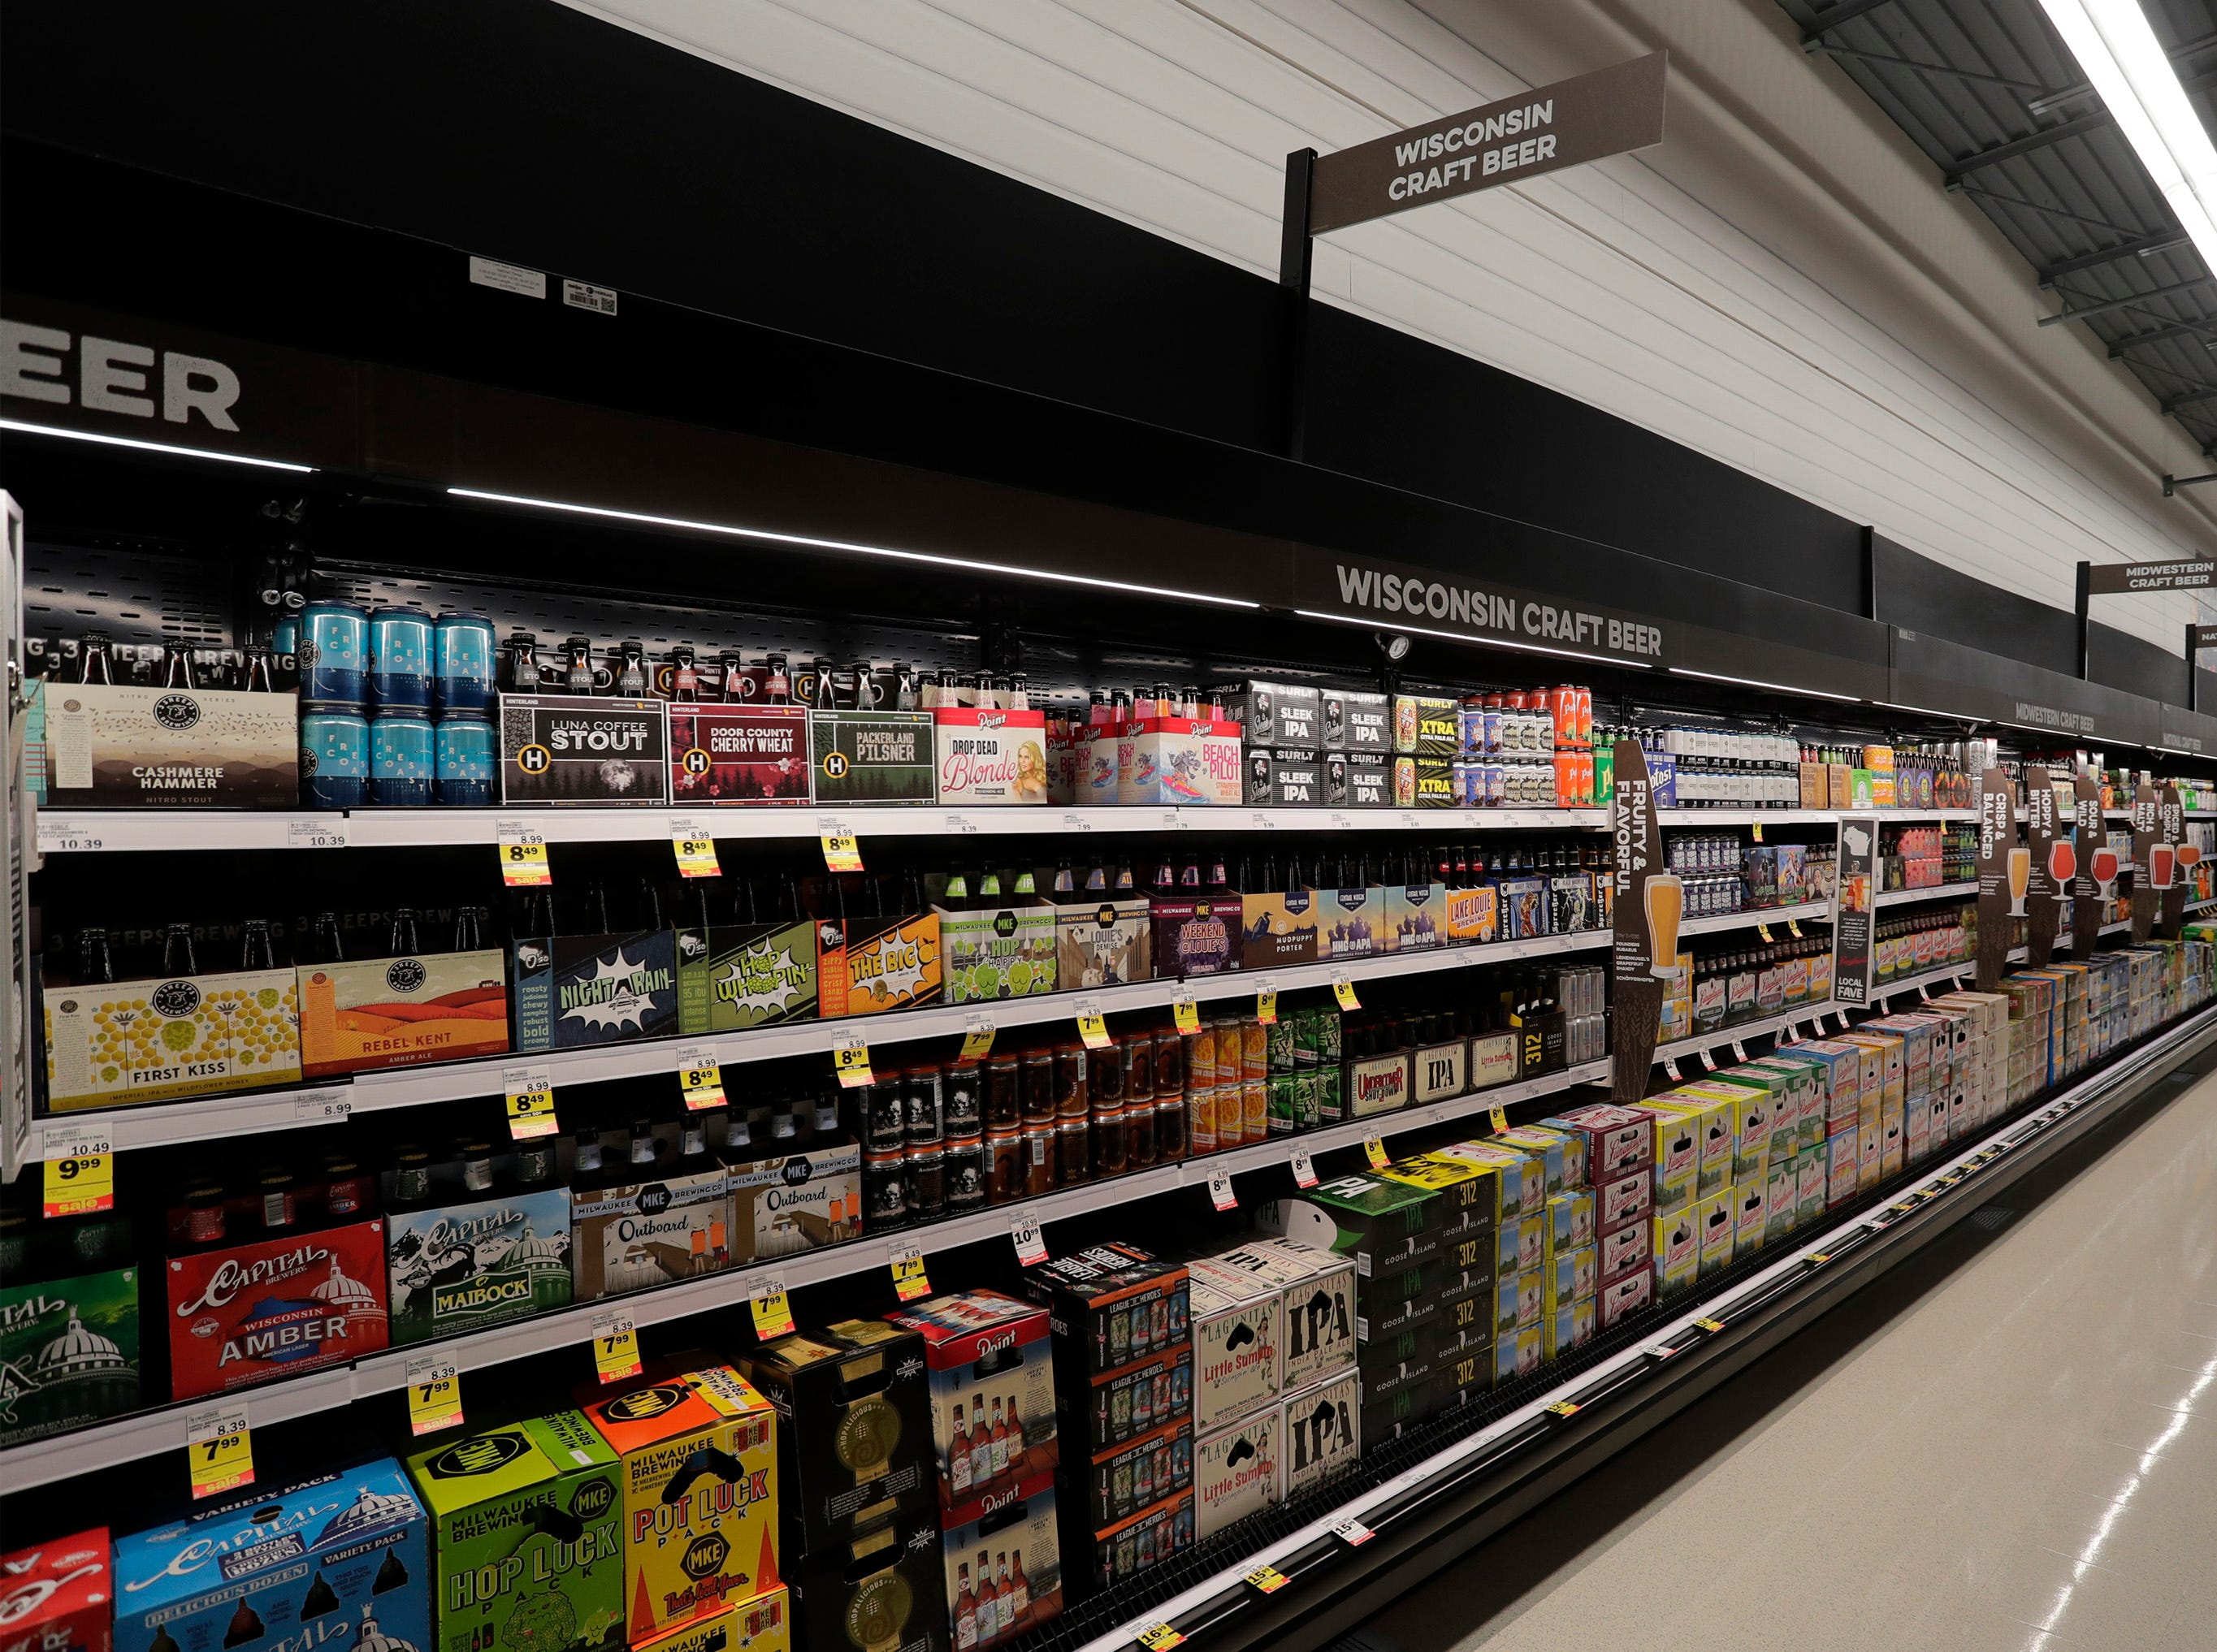 The Wisconsin Craft Beer area at Meijer, Thursday April 25, 2019, in Sheboygan, Wis. The 155,000-square-foot supercenter has 300 employees on opening day.